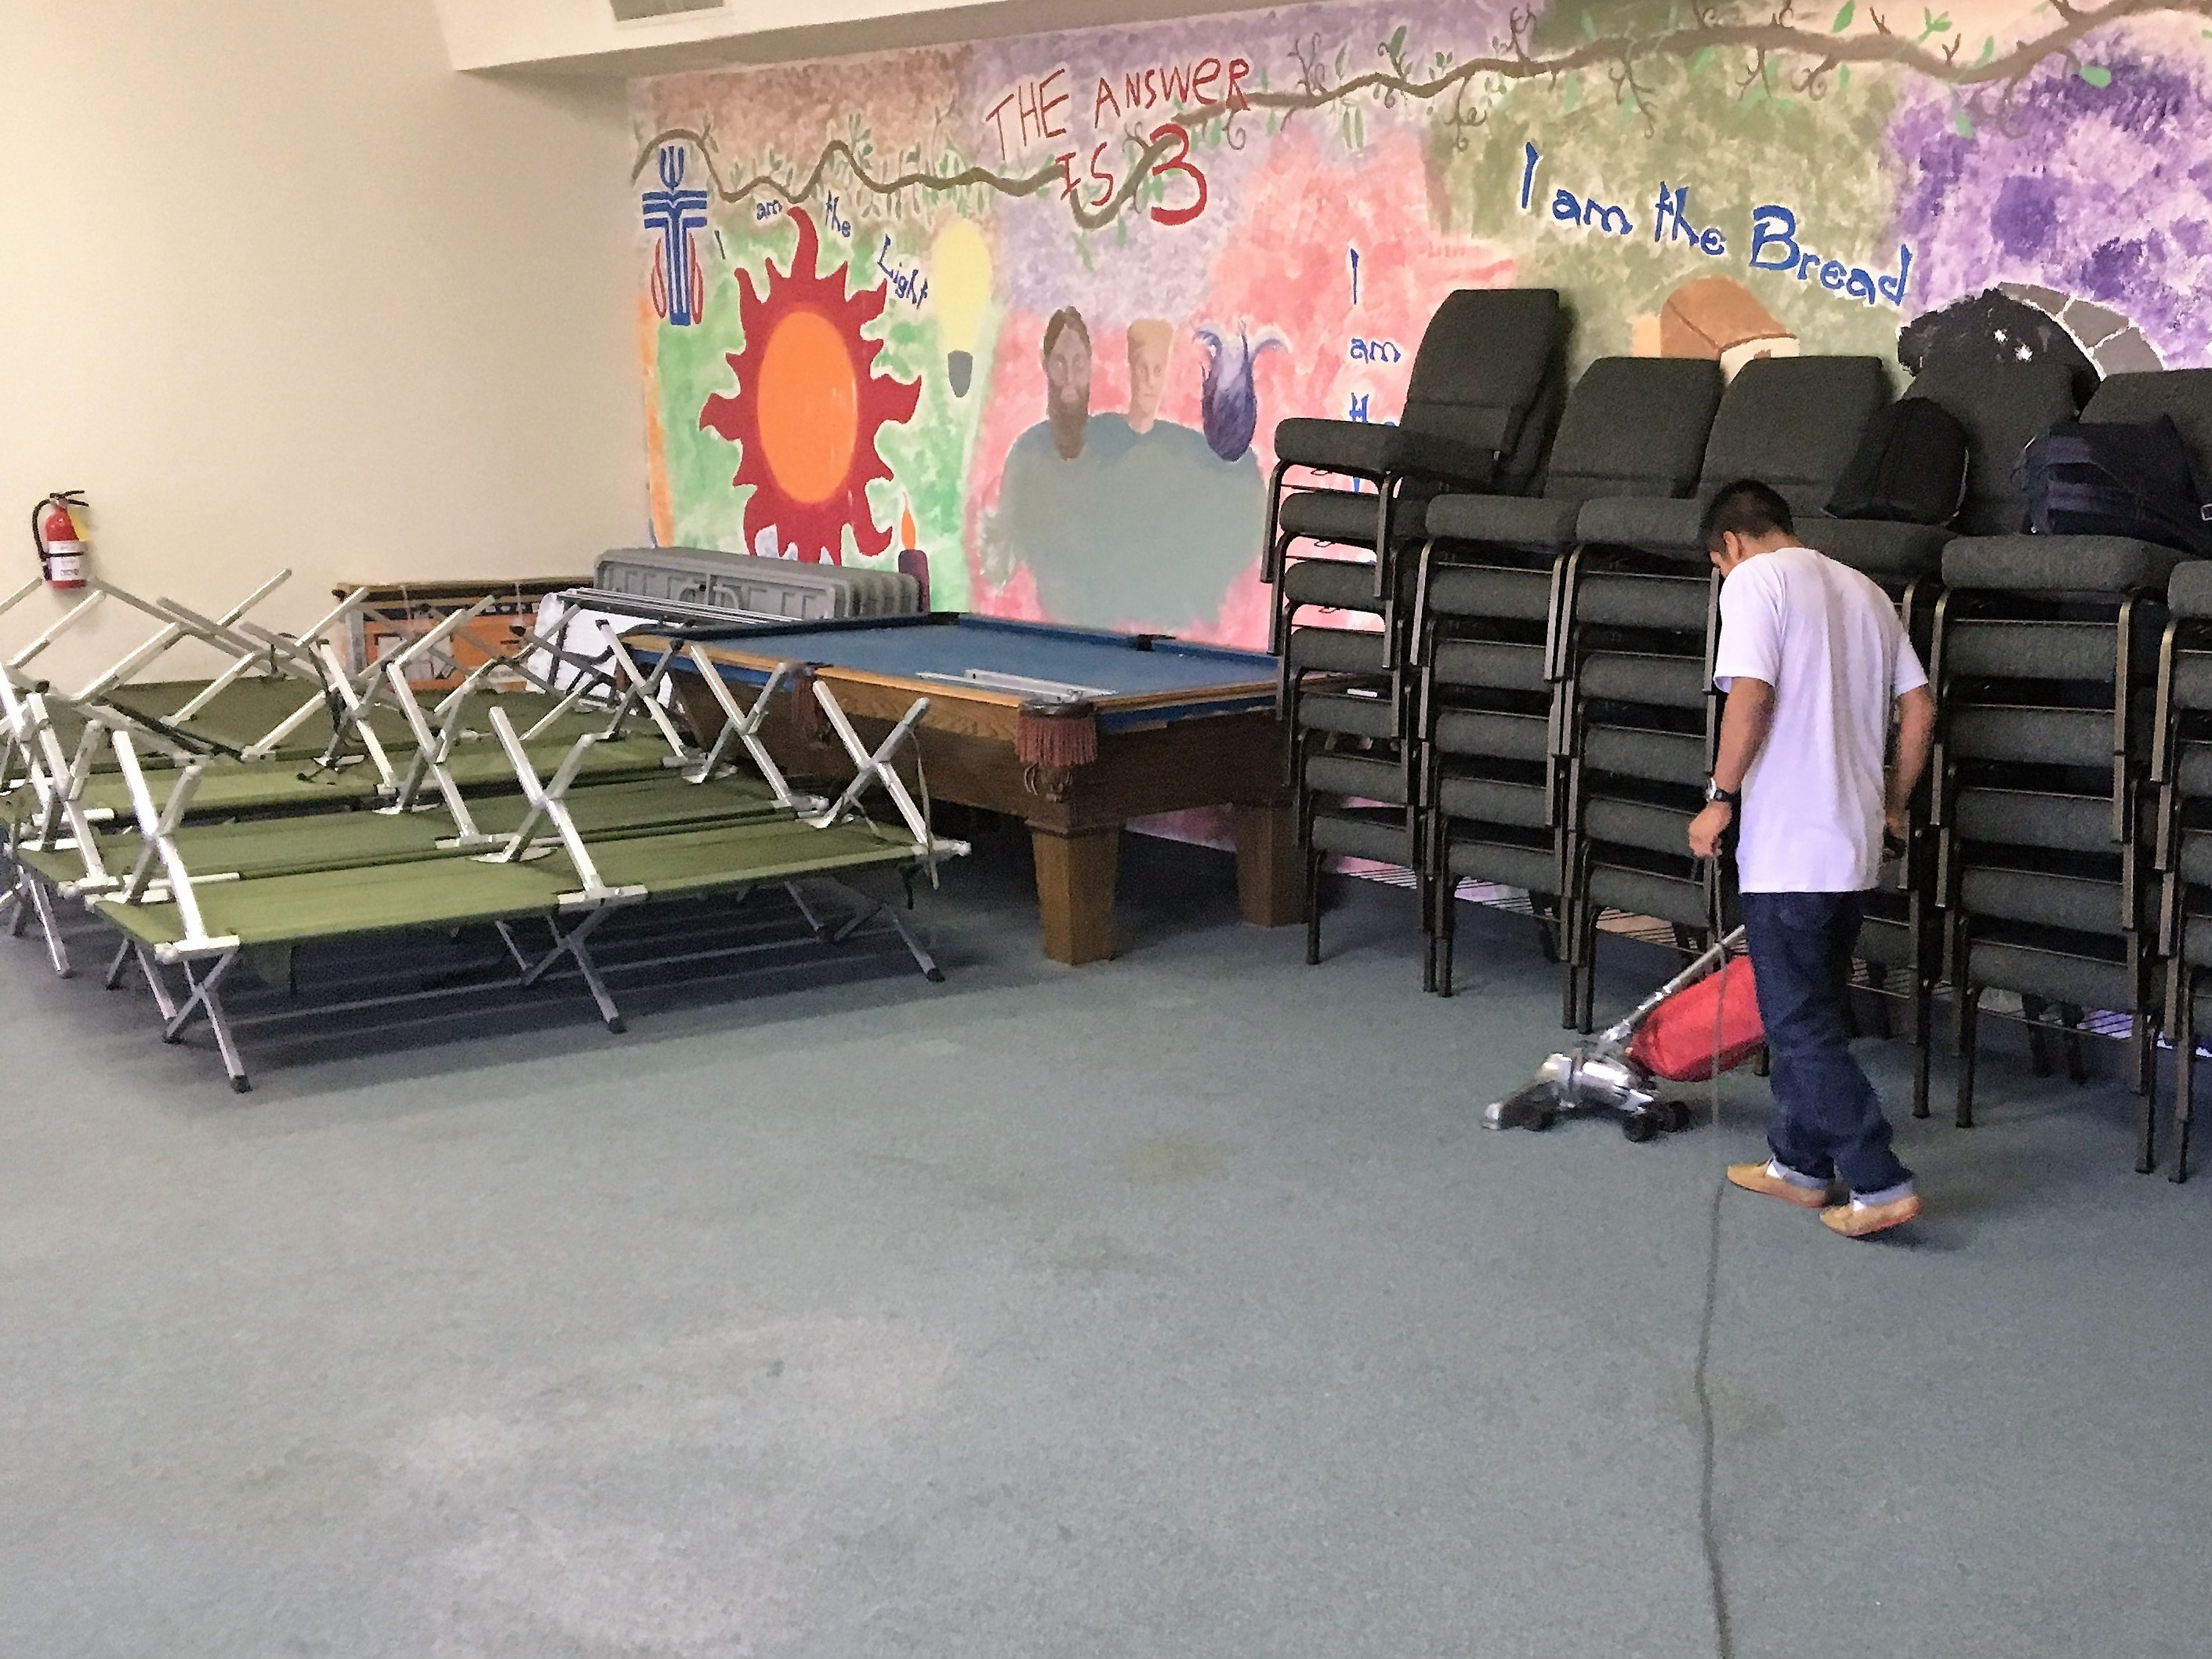 Cleanup after hosting the refugees. The City of El Paso lends out the cots.